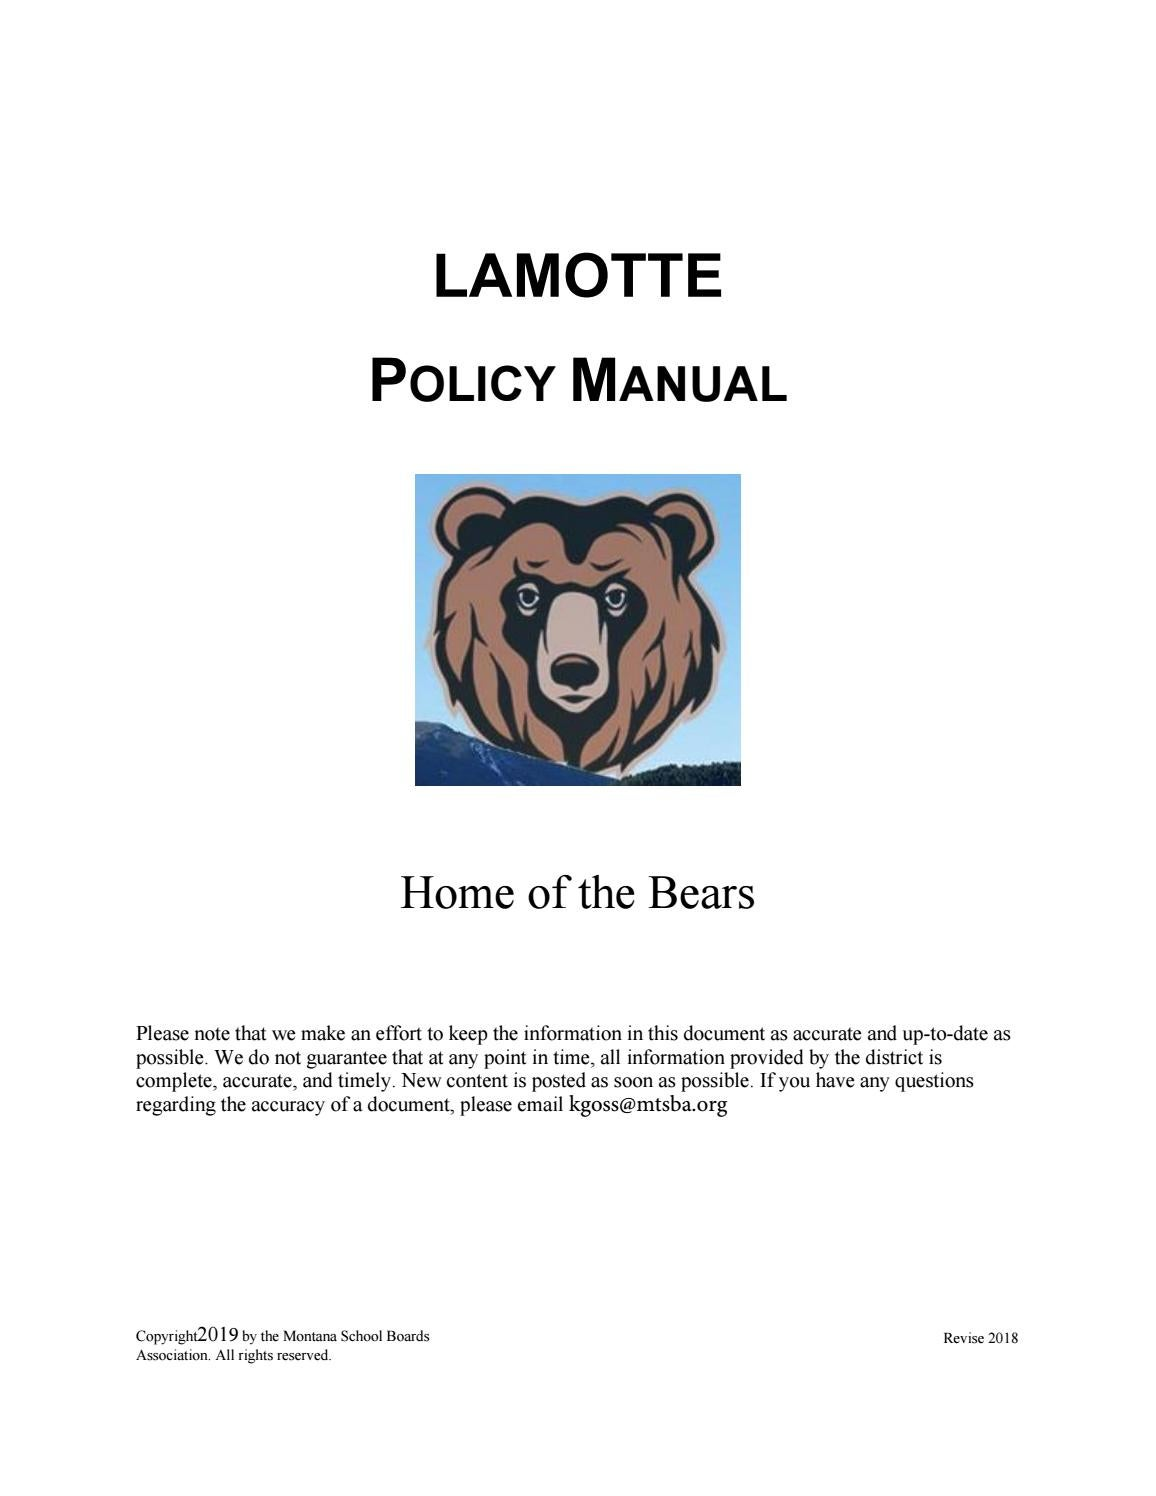 Lamotte Elementary Policy Manual by Montana School Boards